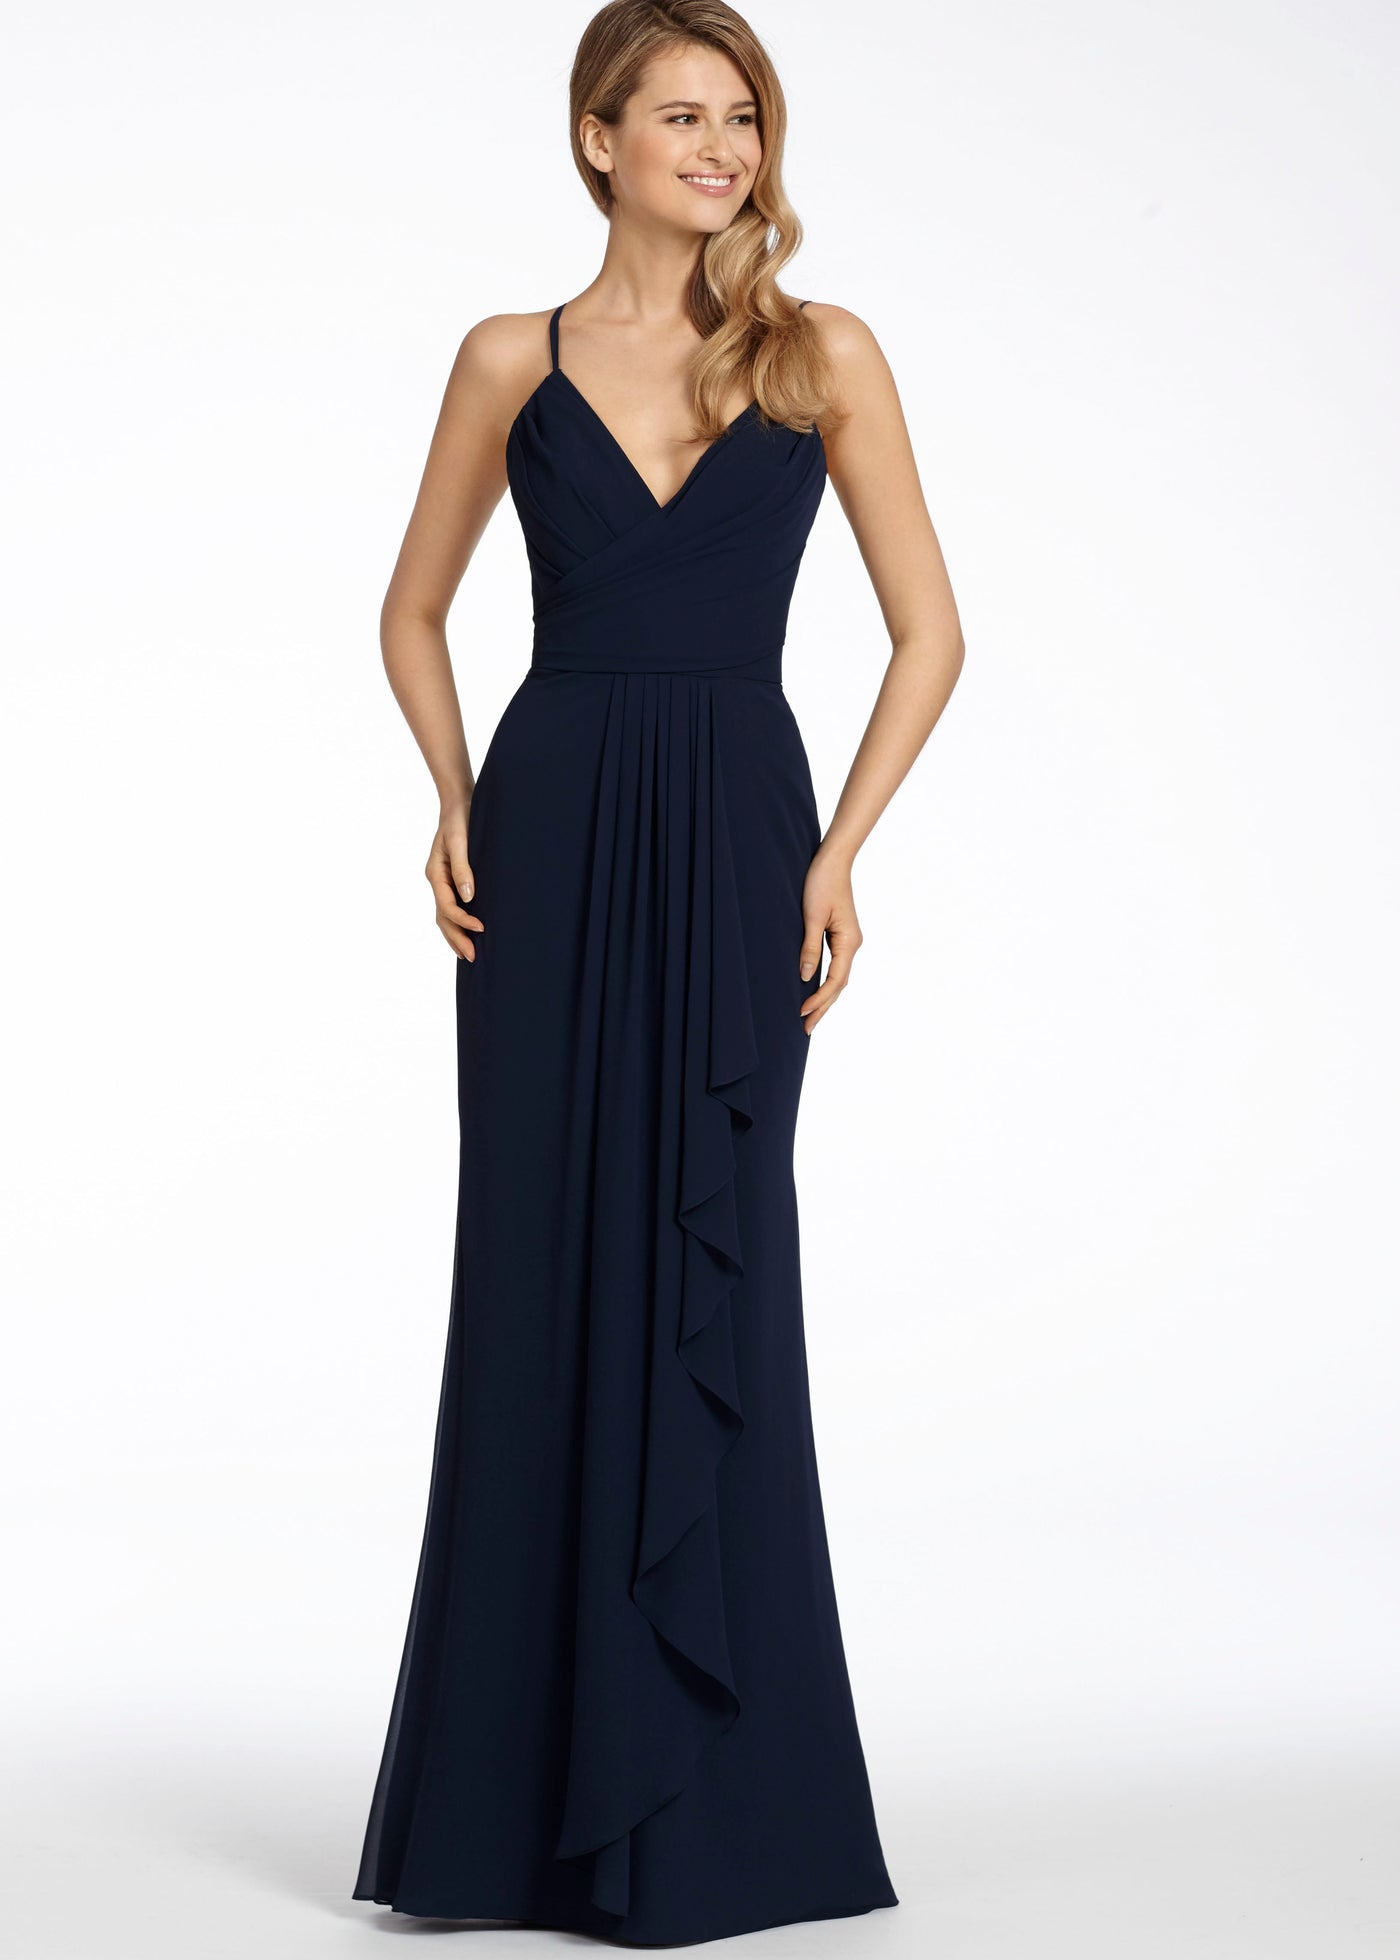 Jackson - Bridesmaid Dress - Hayley Paige Occasions - Eternal Bridal